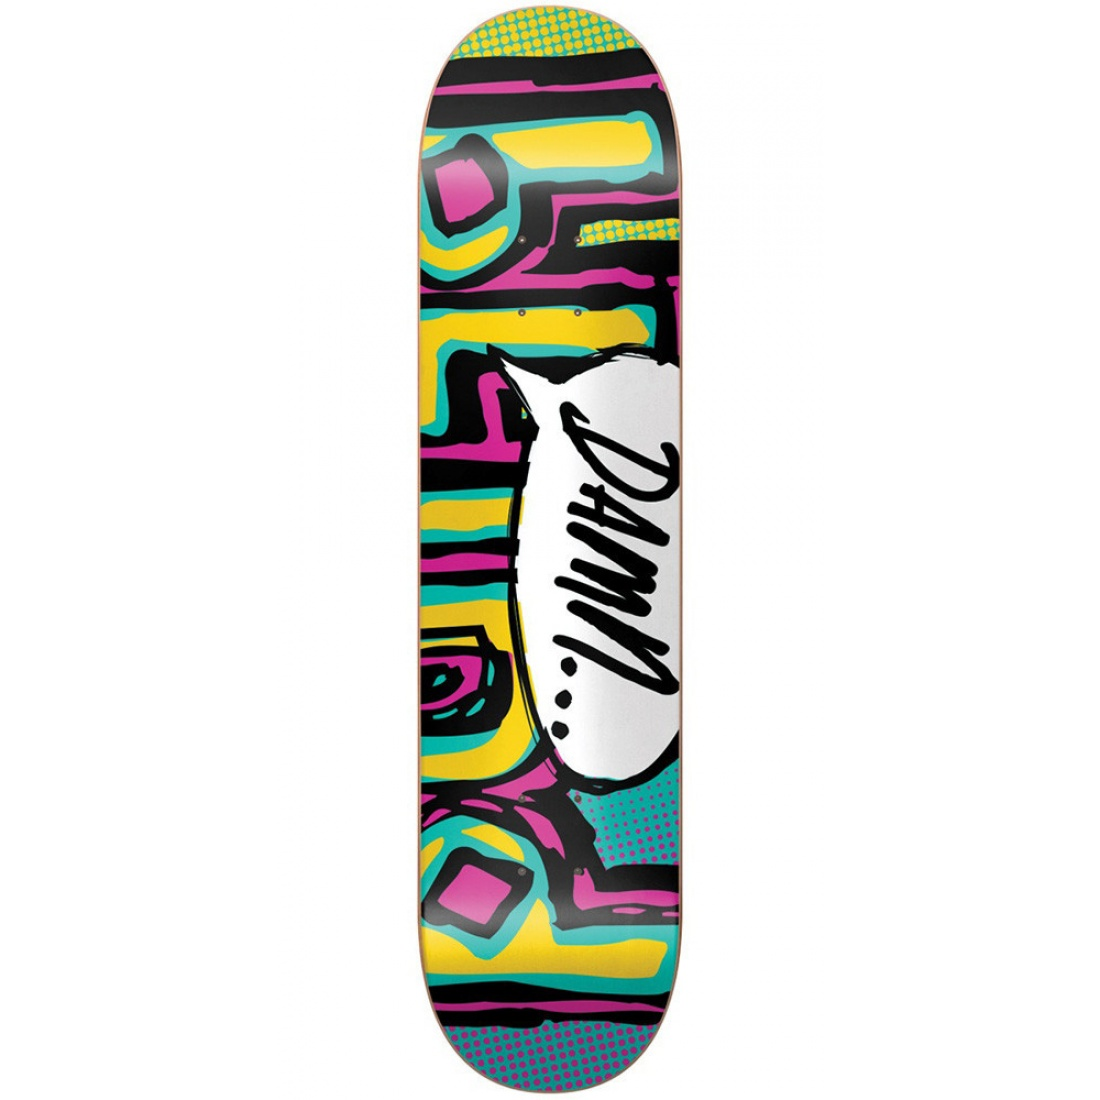 BLD-OG Damn Bubble SS Turquoise/Pink/Yellow 8.0 Deck